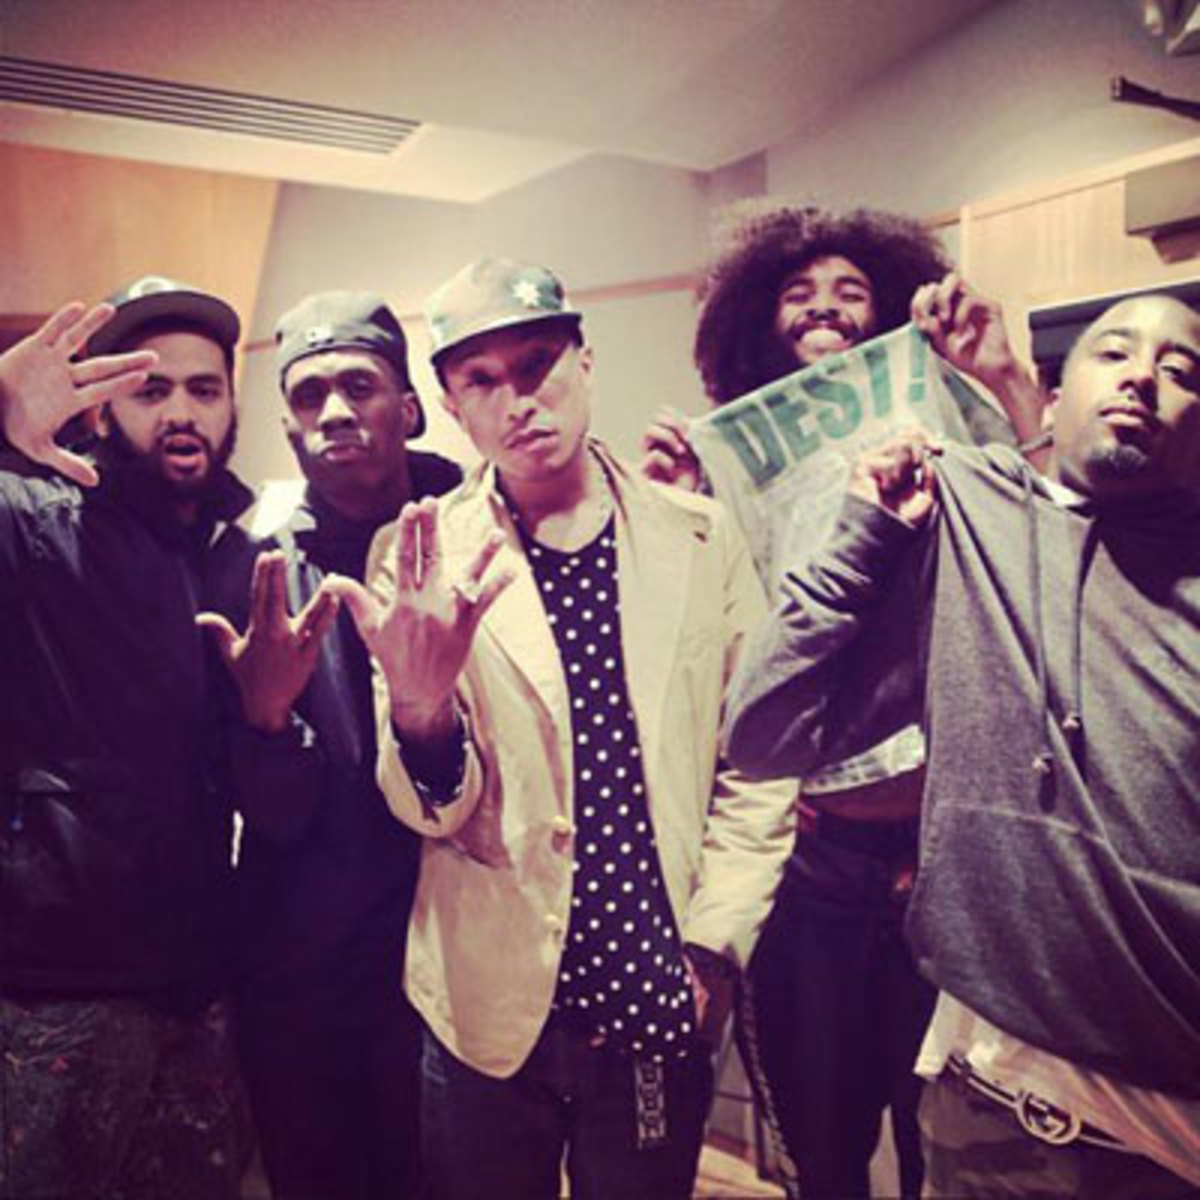 overdoz-pharrell-in-studio.jpg